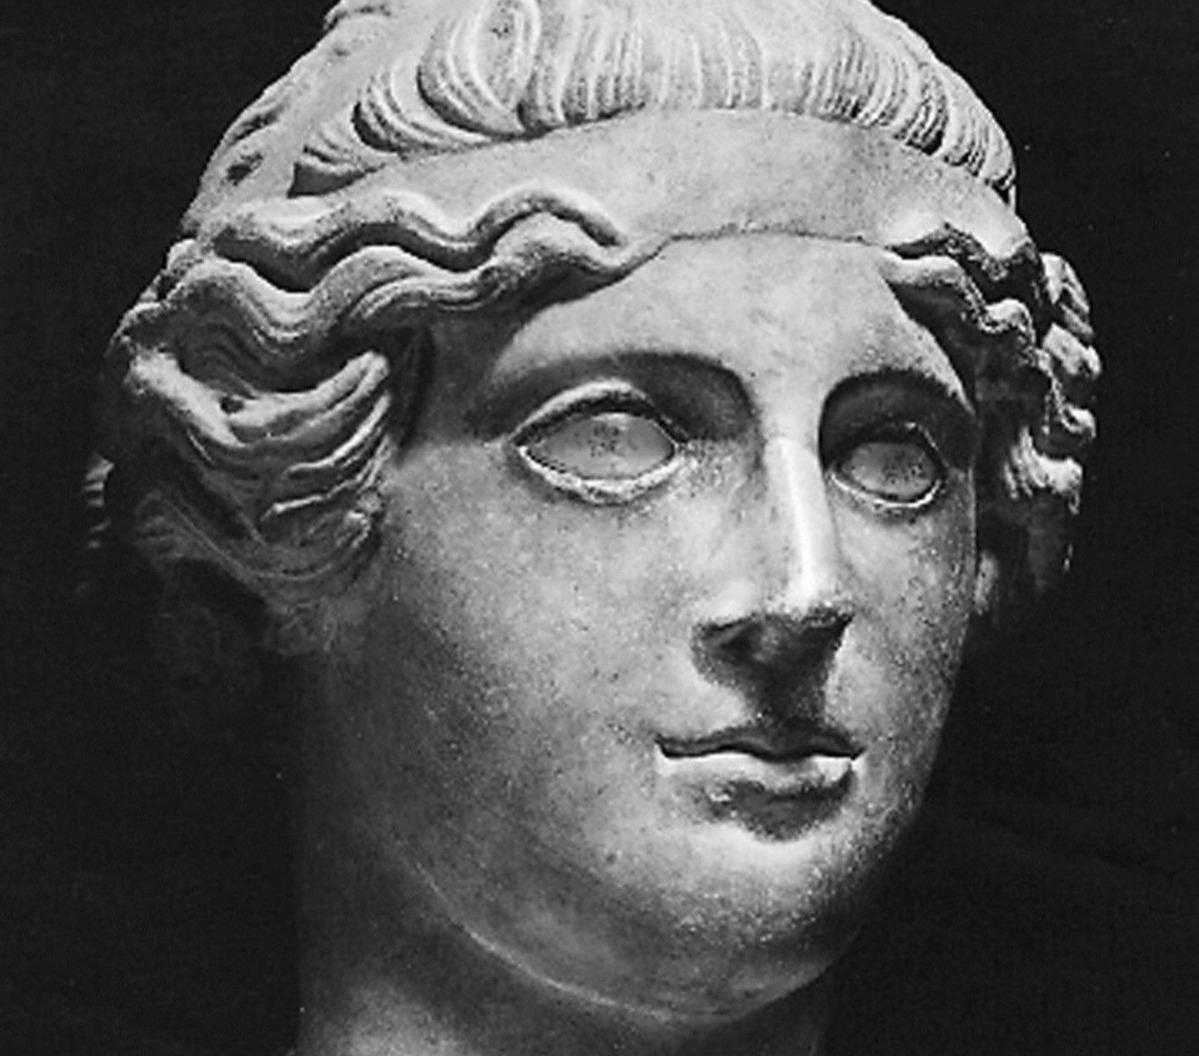 cleopatra real face revealed